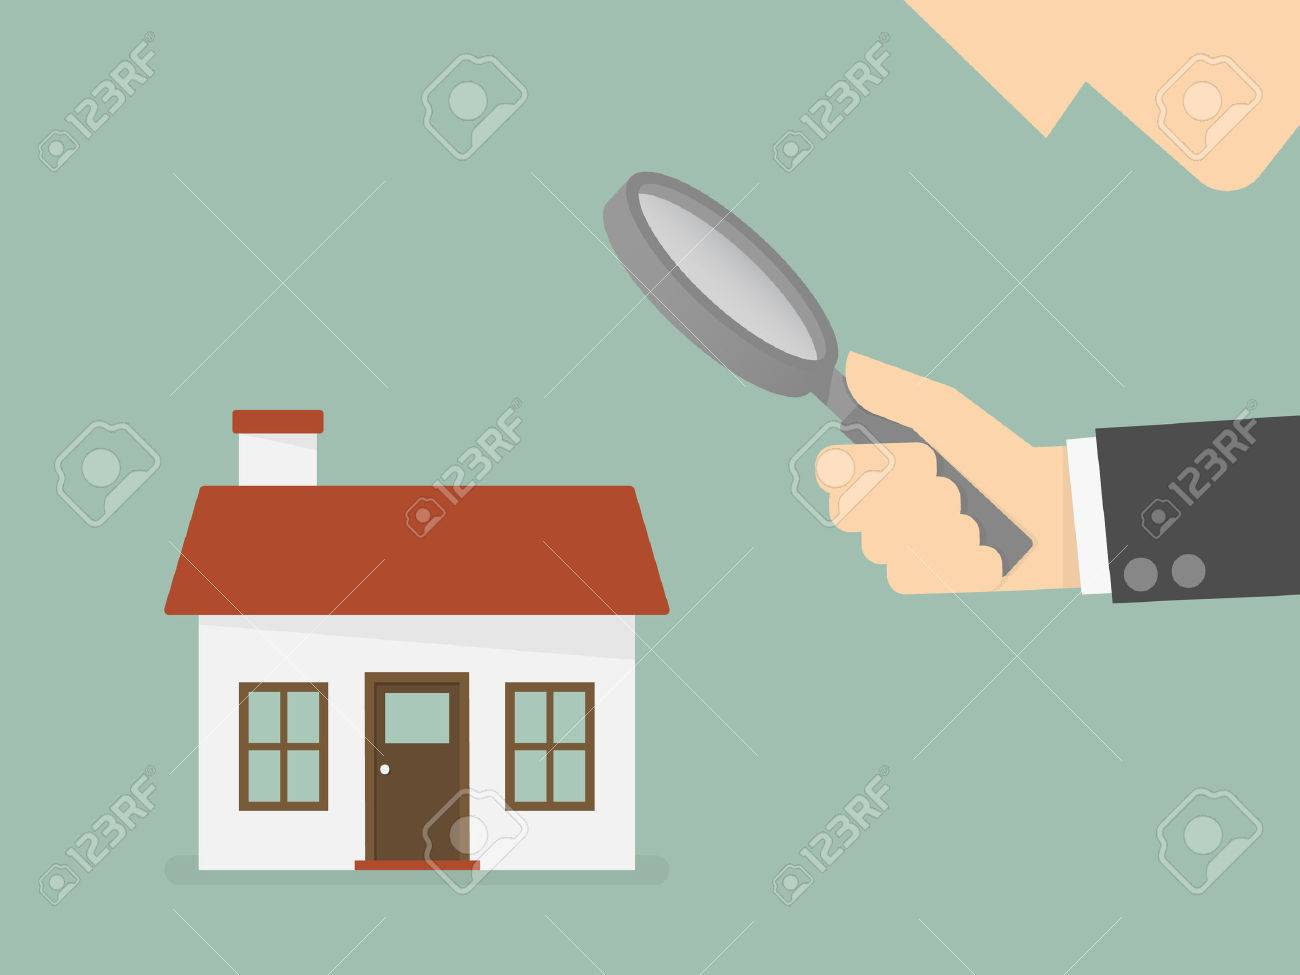 Find real estate, searching for home - 54429376